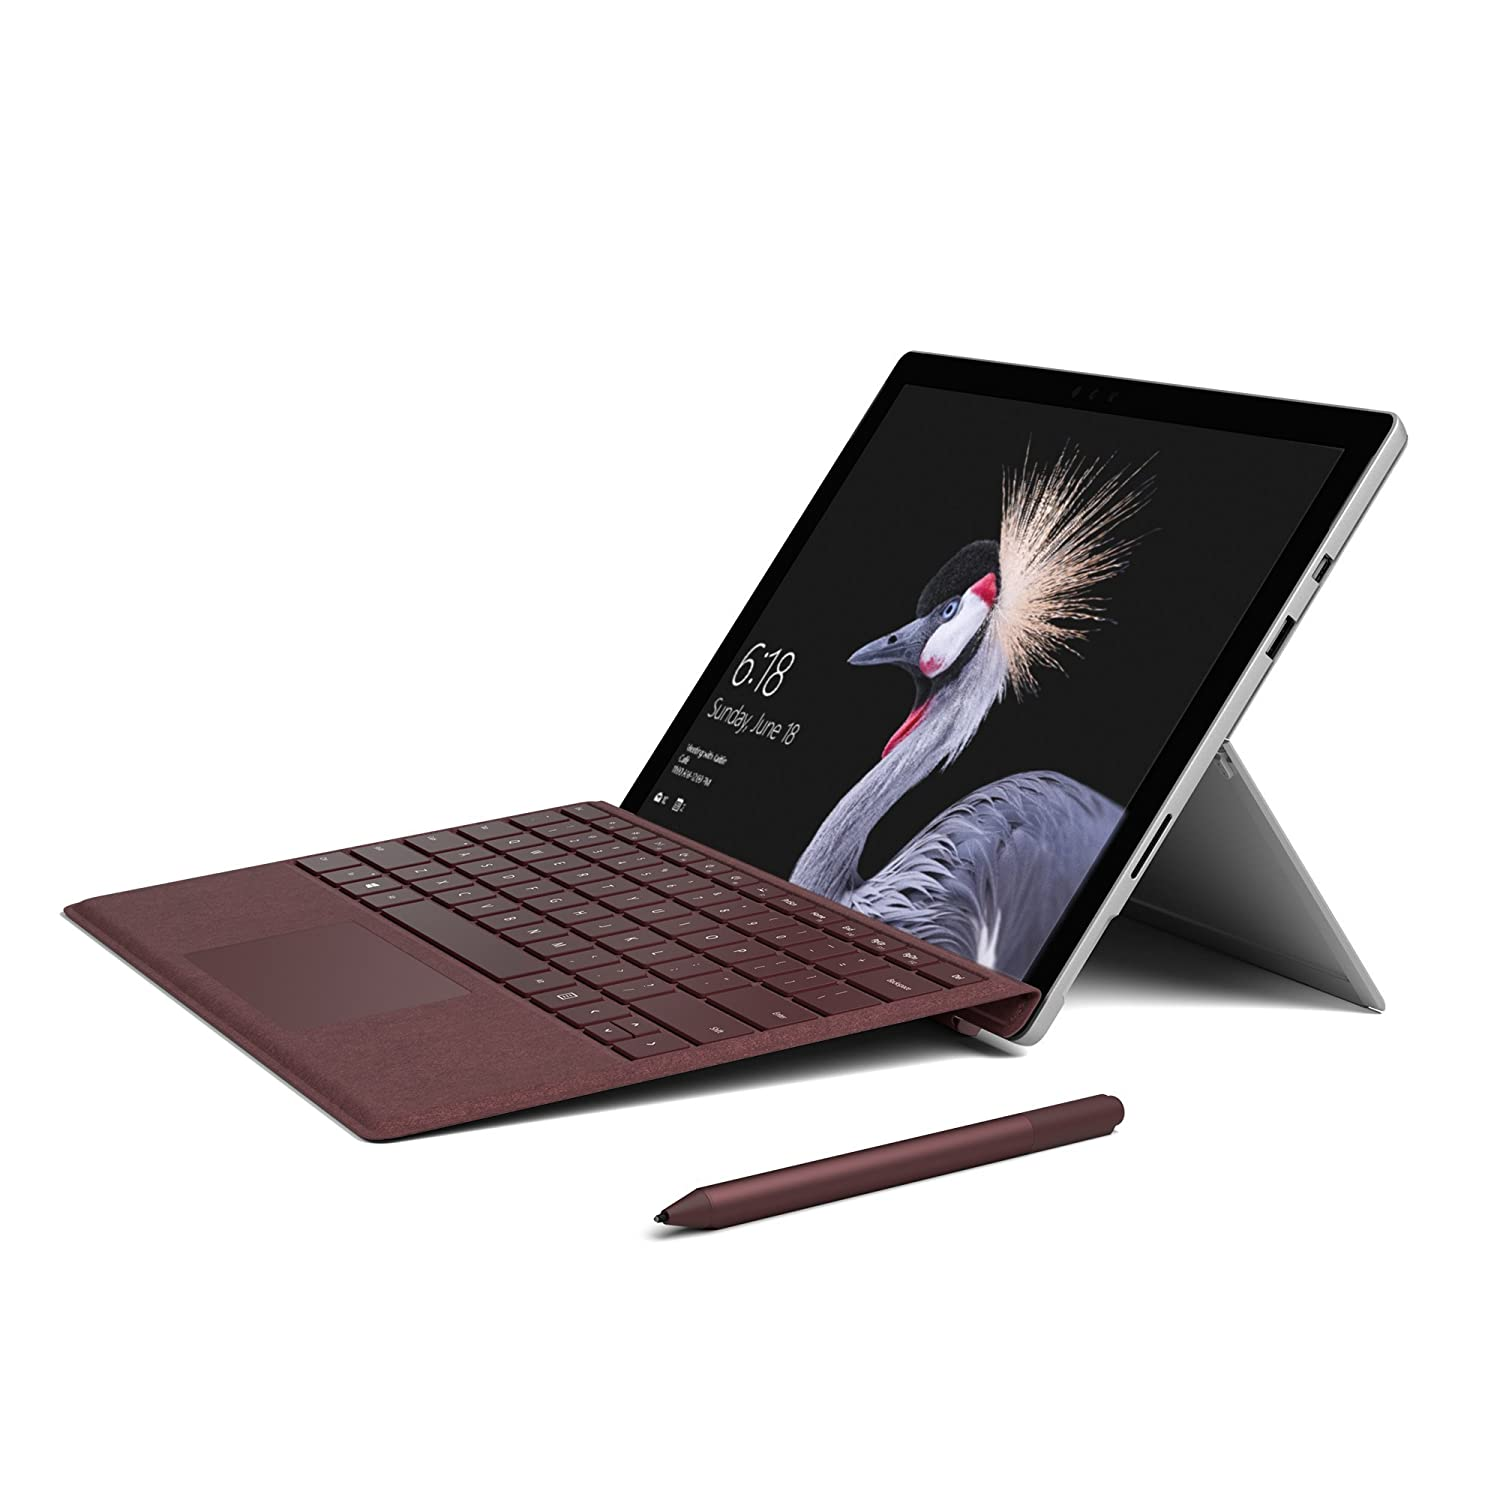 f28174a2c2b Amazon.com: Microsoft Surface Pro Signature Type Cover- Burgundy -  FFP-00041: Computers & Accessories